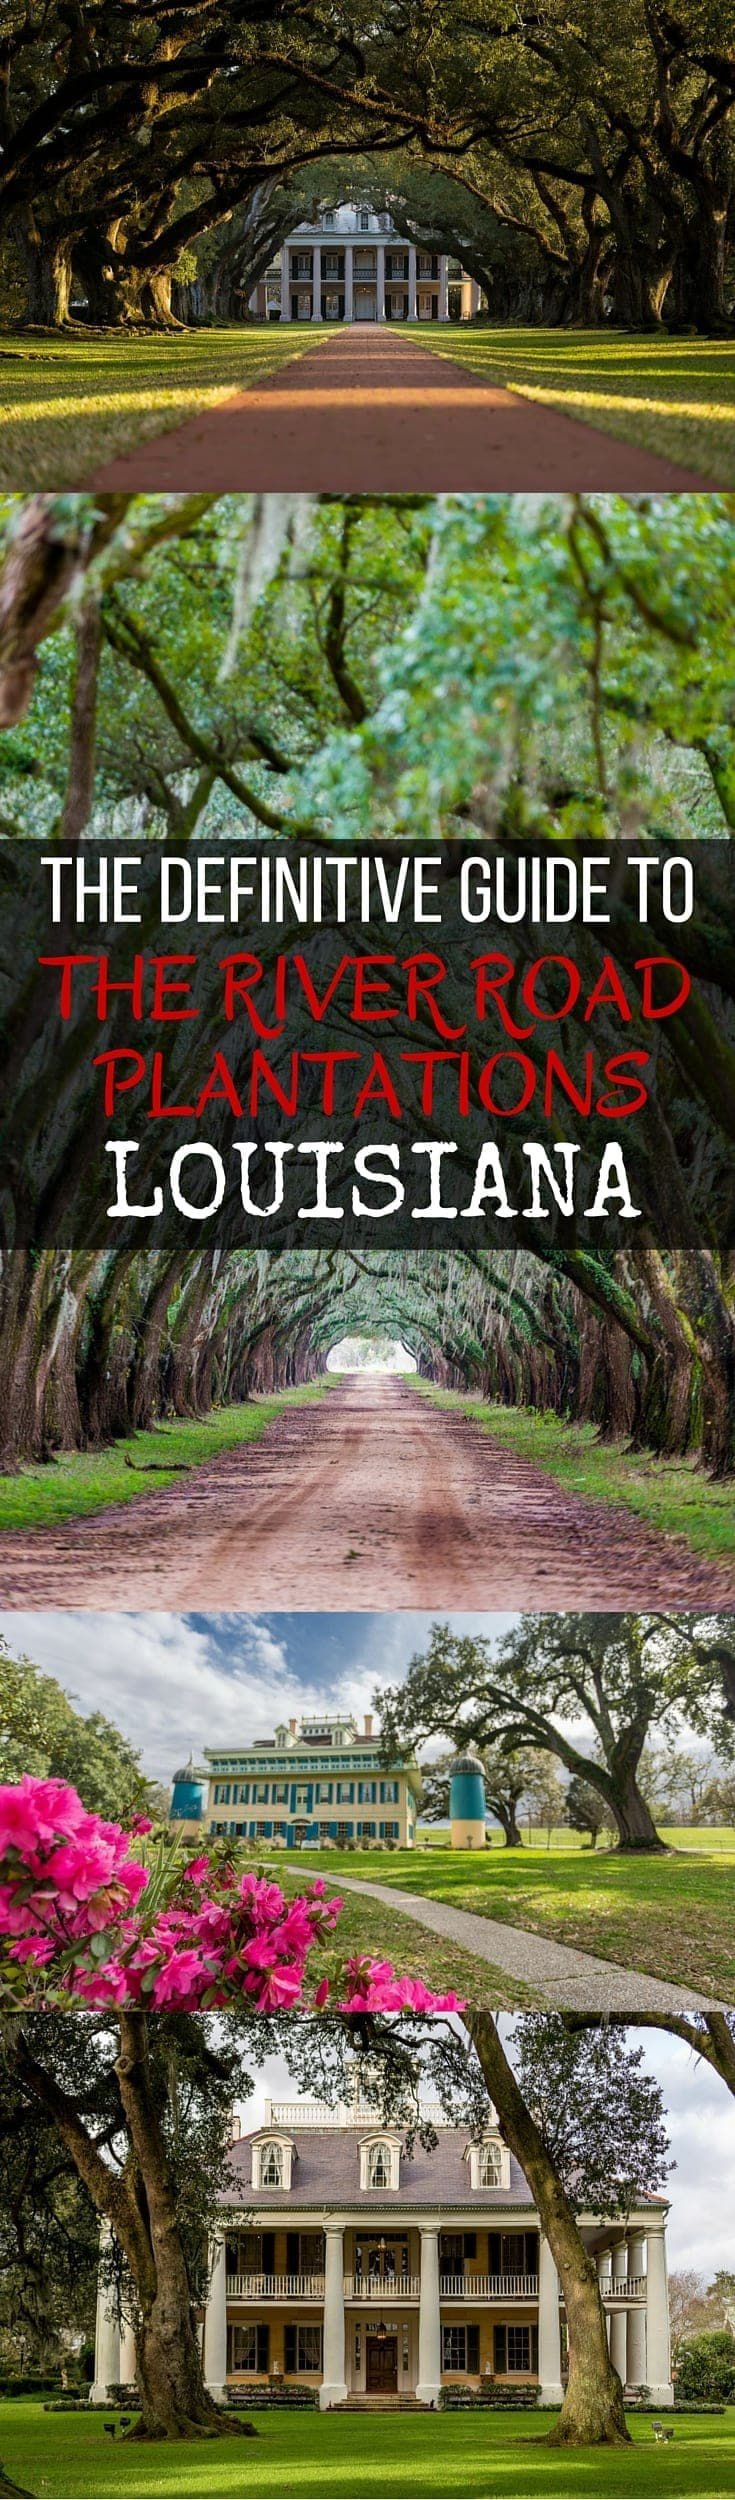 An incredibly comprehensive guide to the beautiful plantations along the River Road in Louisiana between Baton Rouge and New Orleans Louisiana